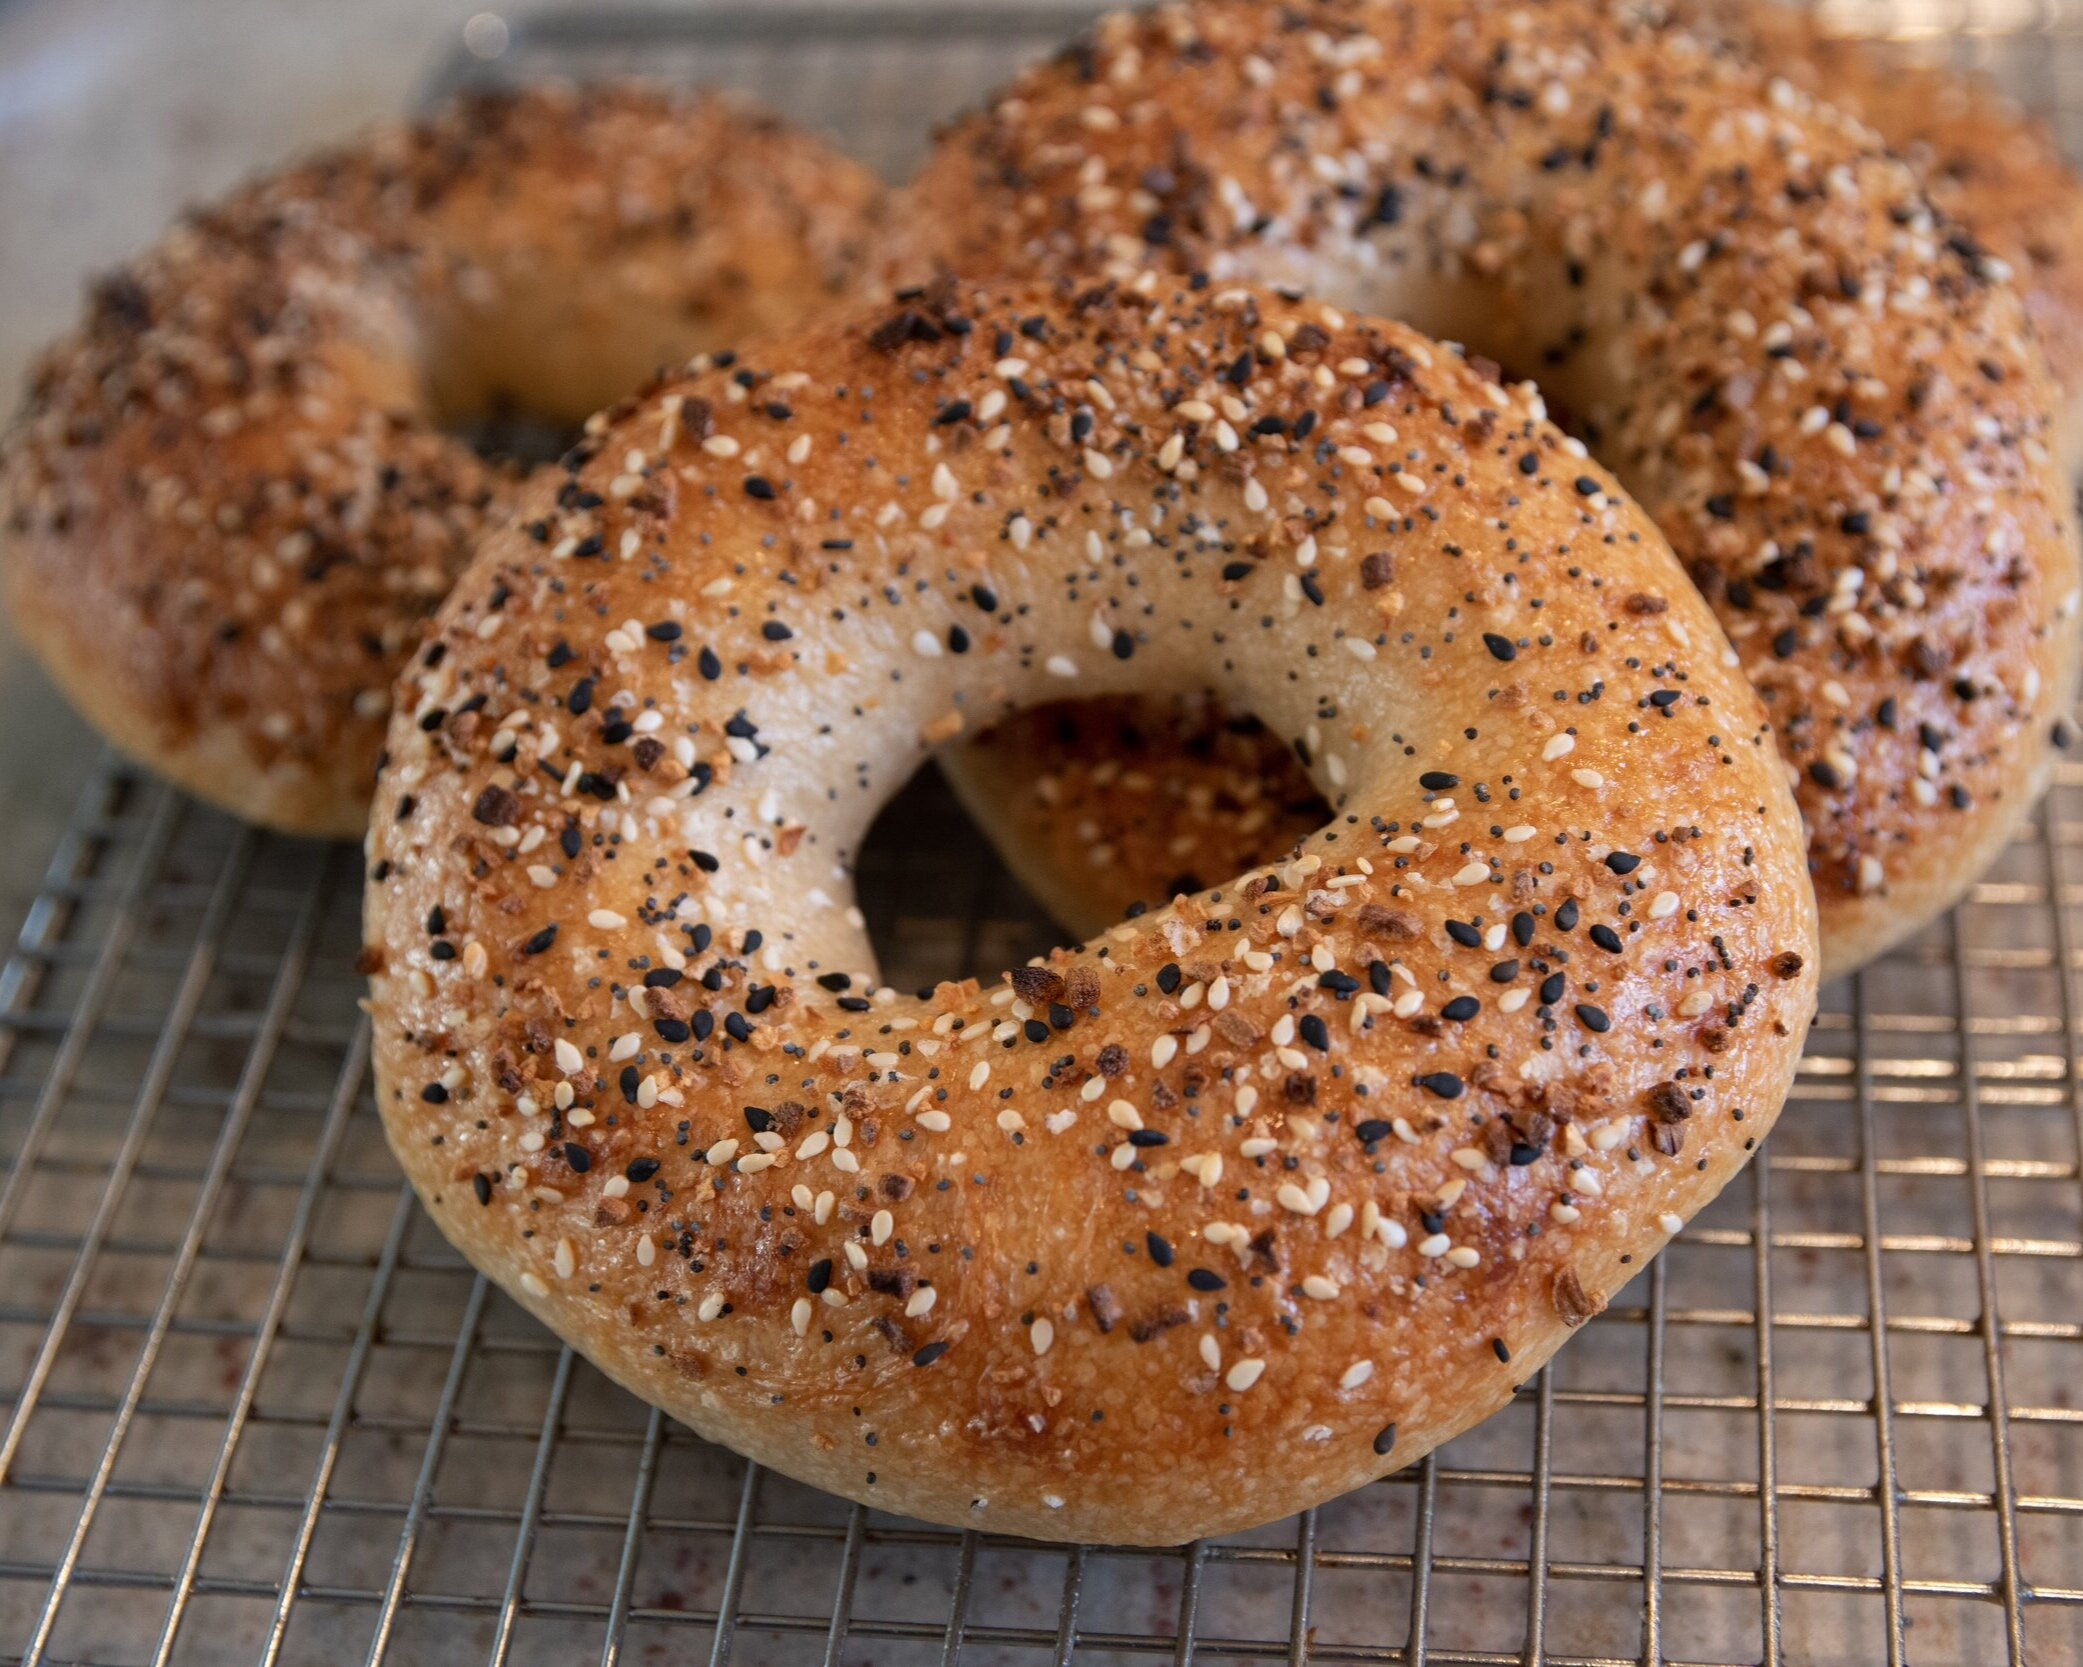 The Fed to Replace NY Times for High Bagel Crimes - by gustie owens and elizabeth Meyer